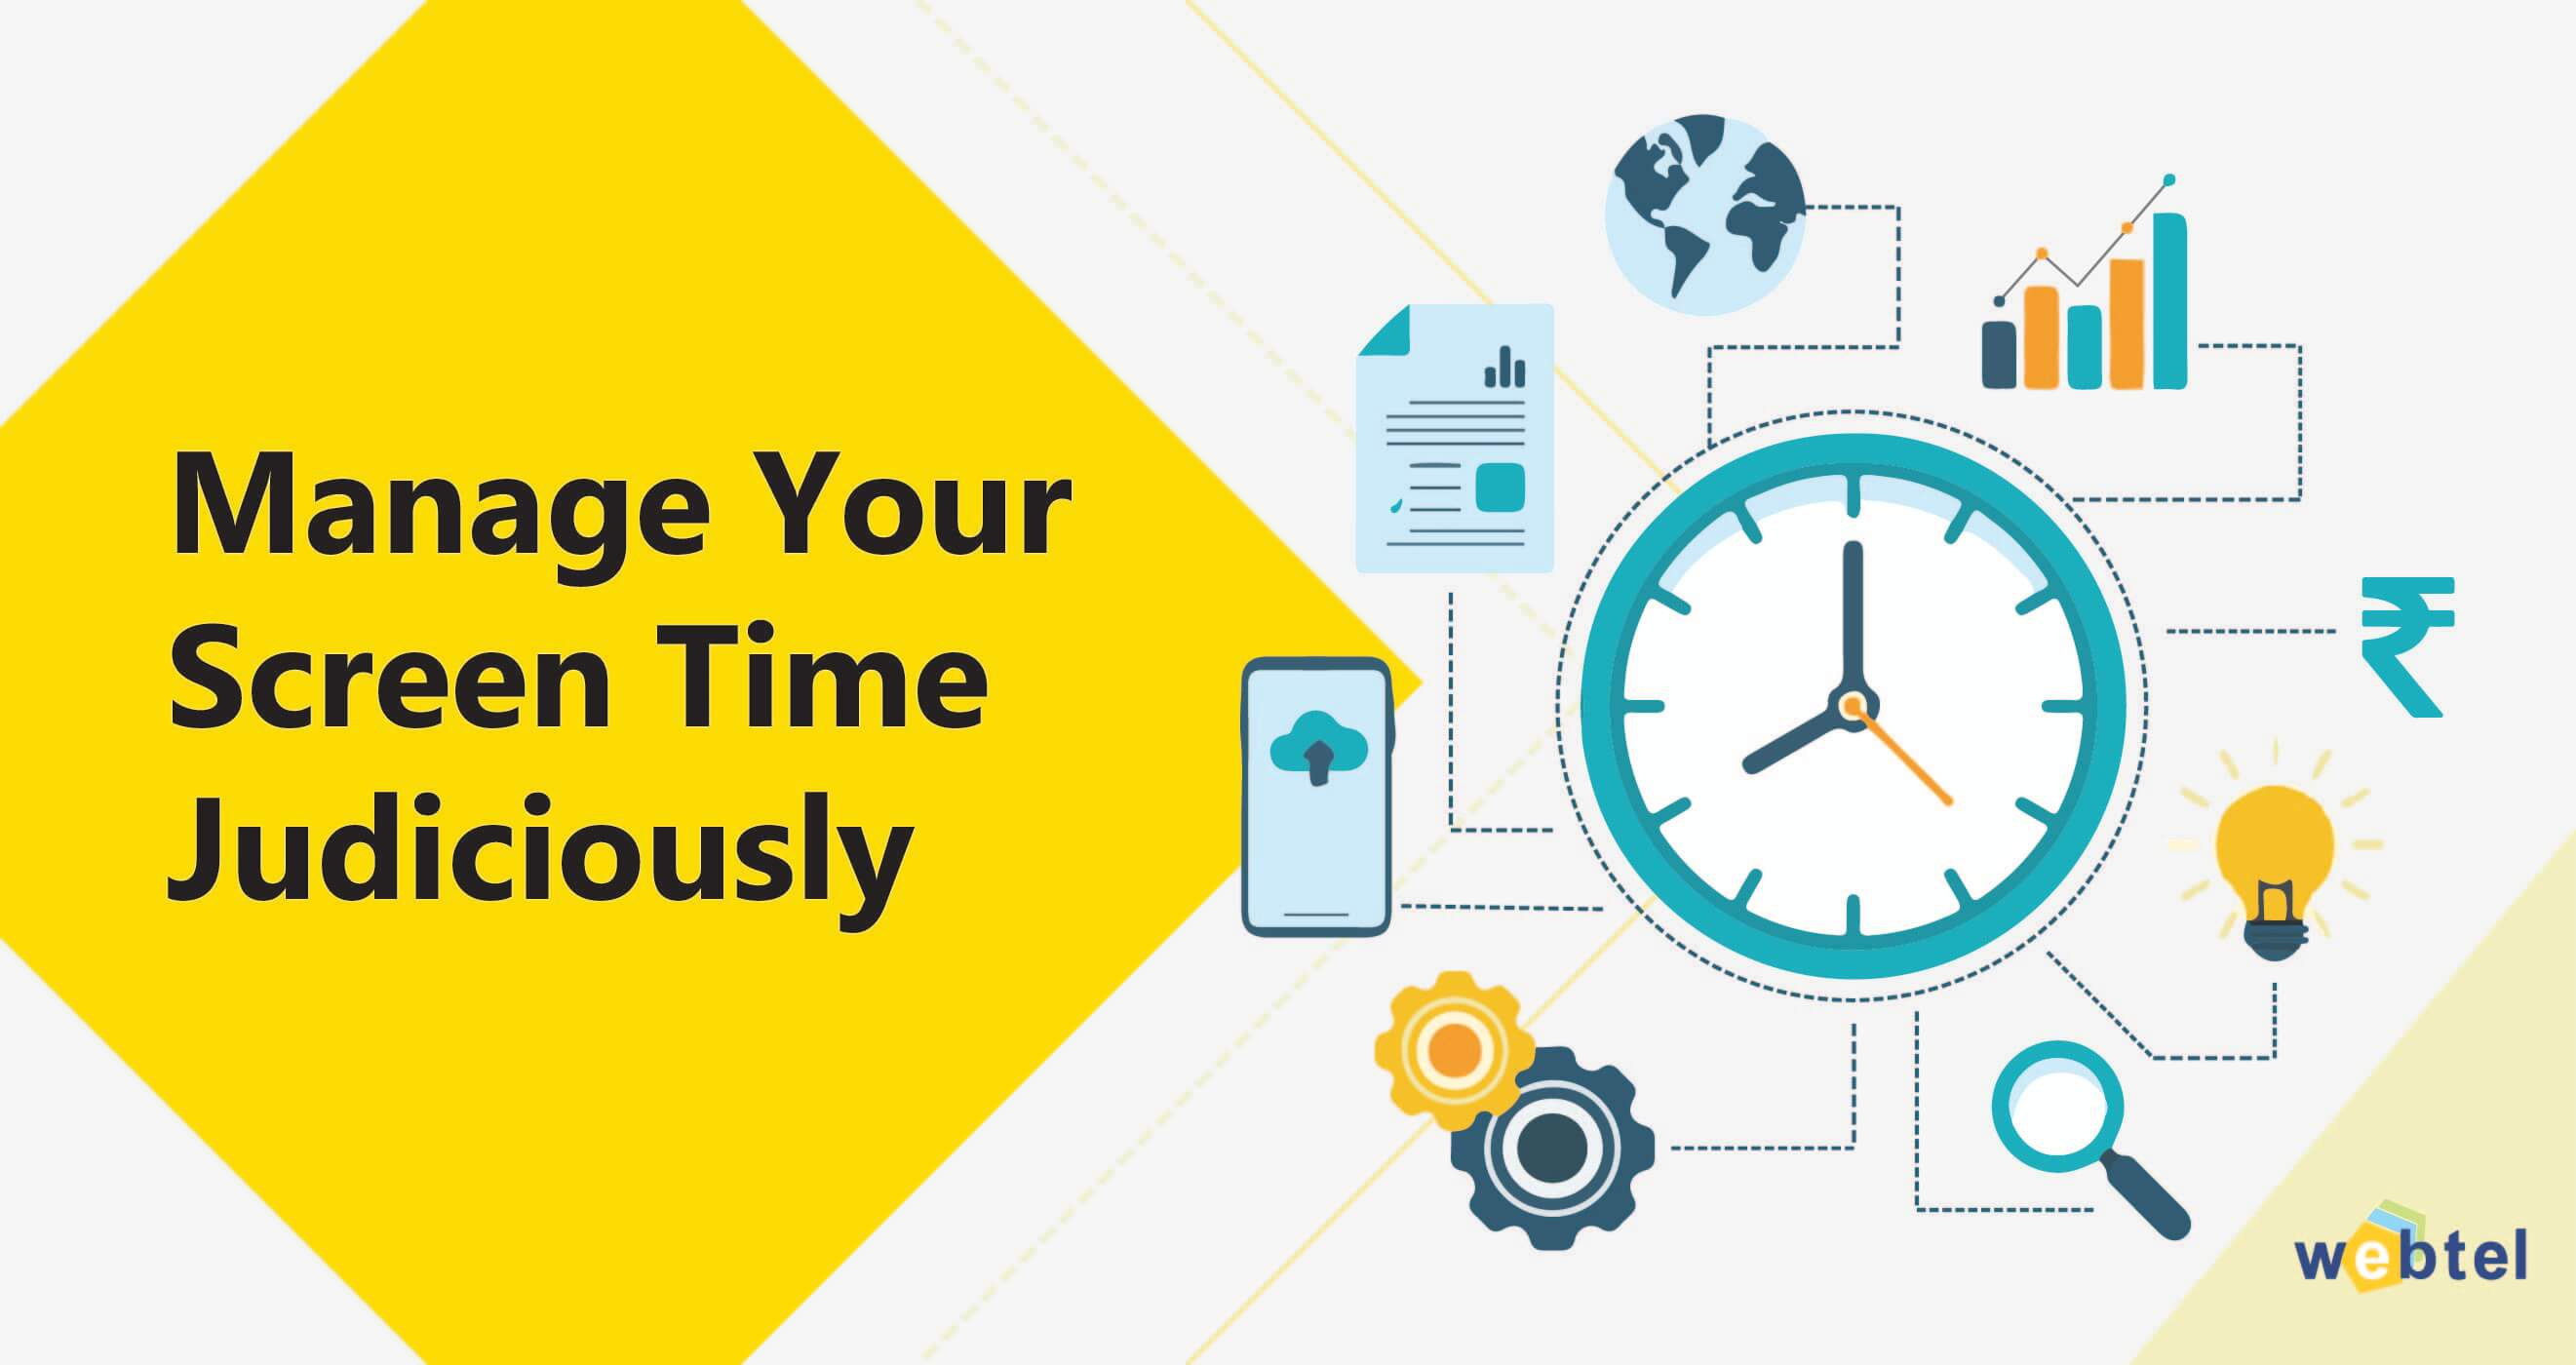 Avoid Burnout and Manage Your Screen Time Judiciously